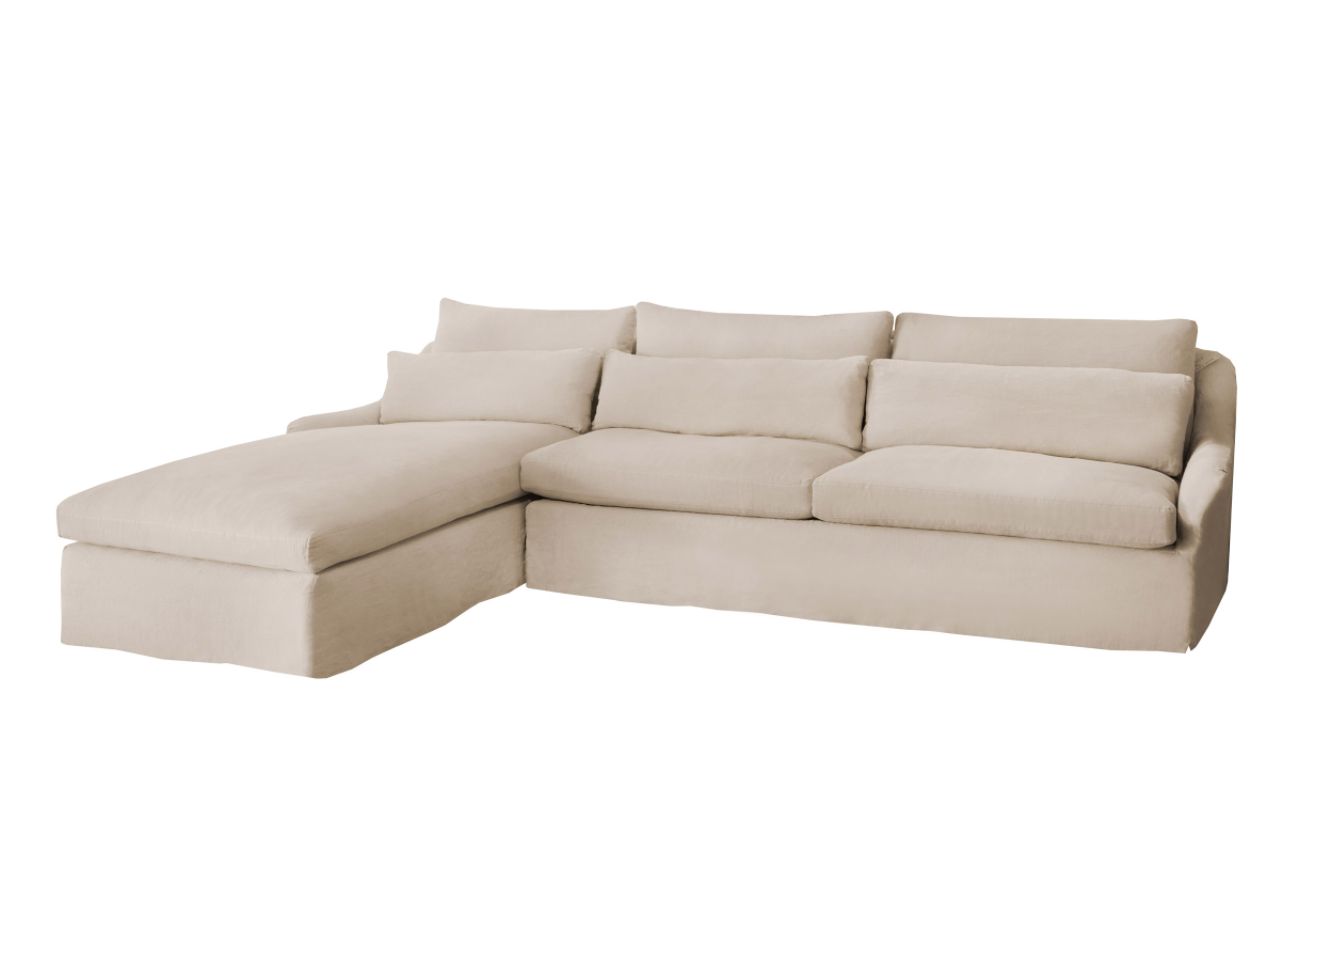 Genevieve LAF Sectional by Cisco Brothers | As shown: Starting at $8,340.00. More options available.